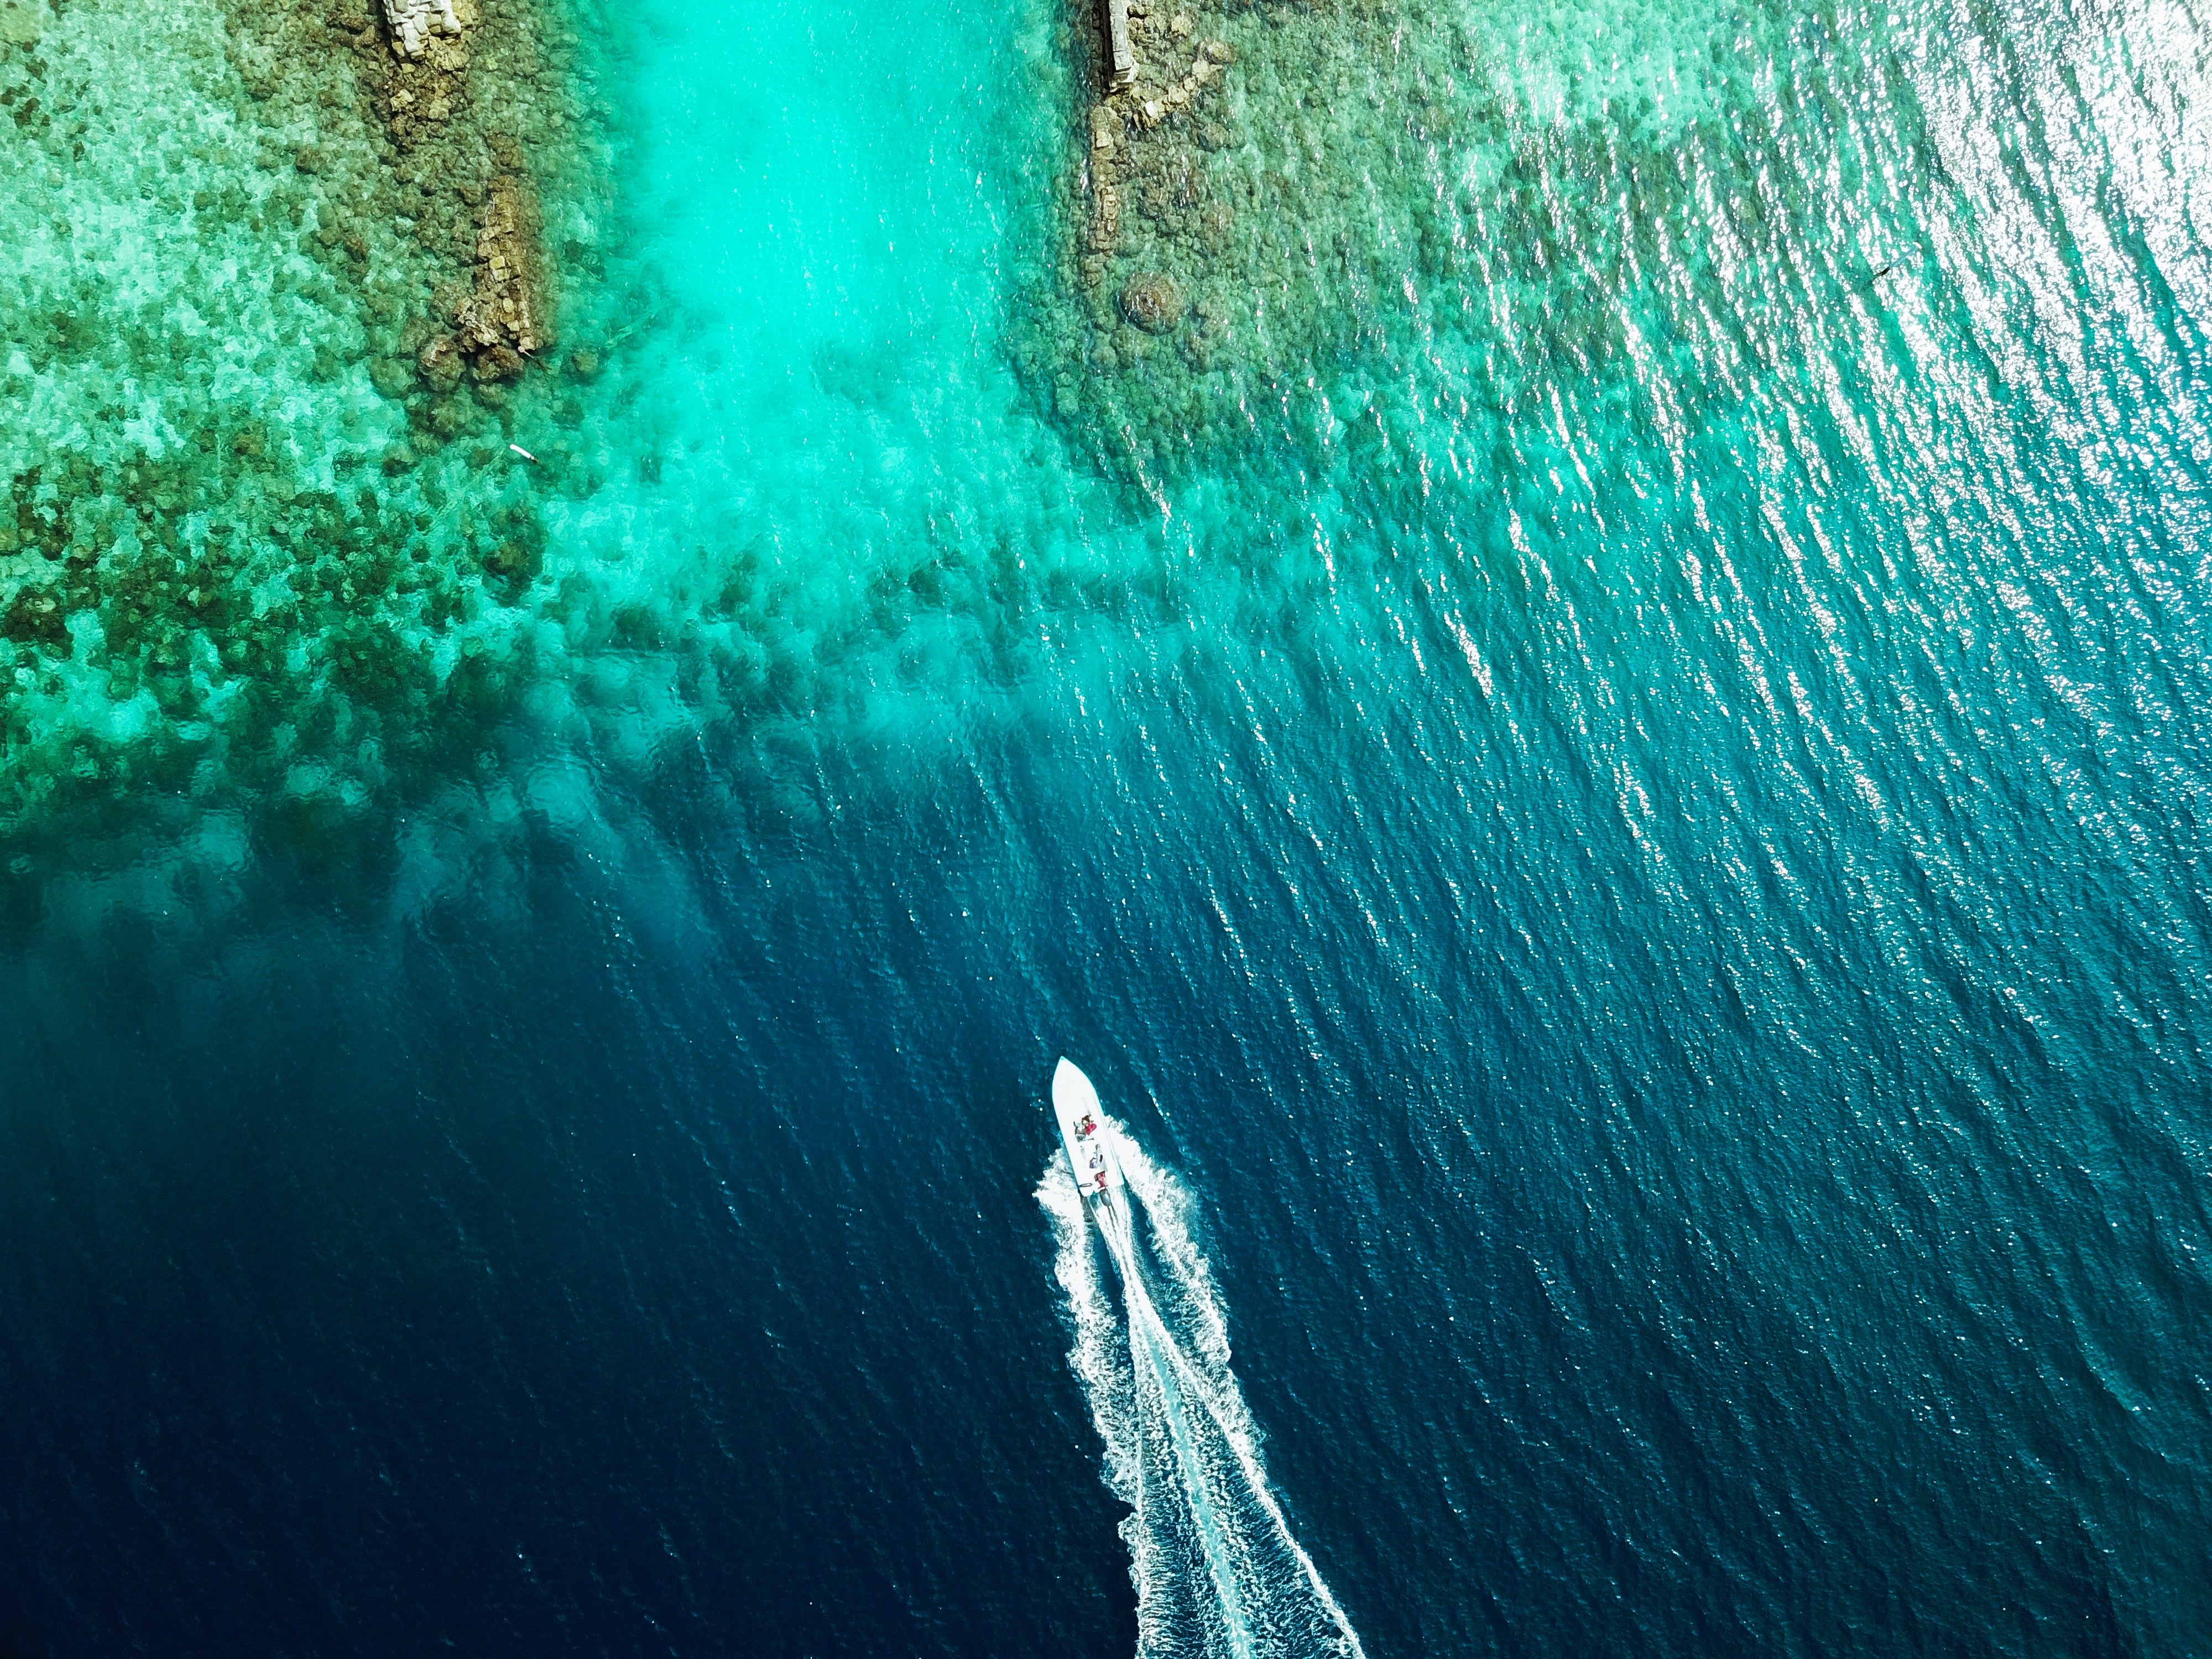 aerial view of boat sailing through island